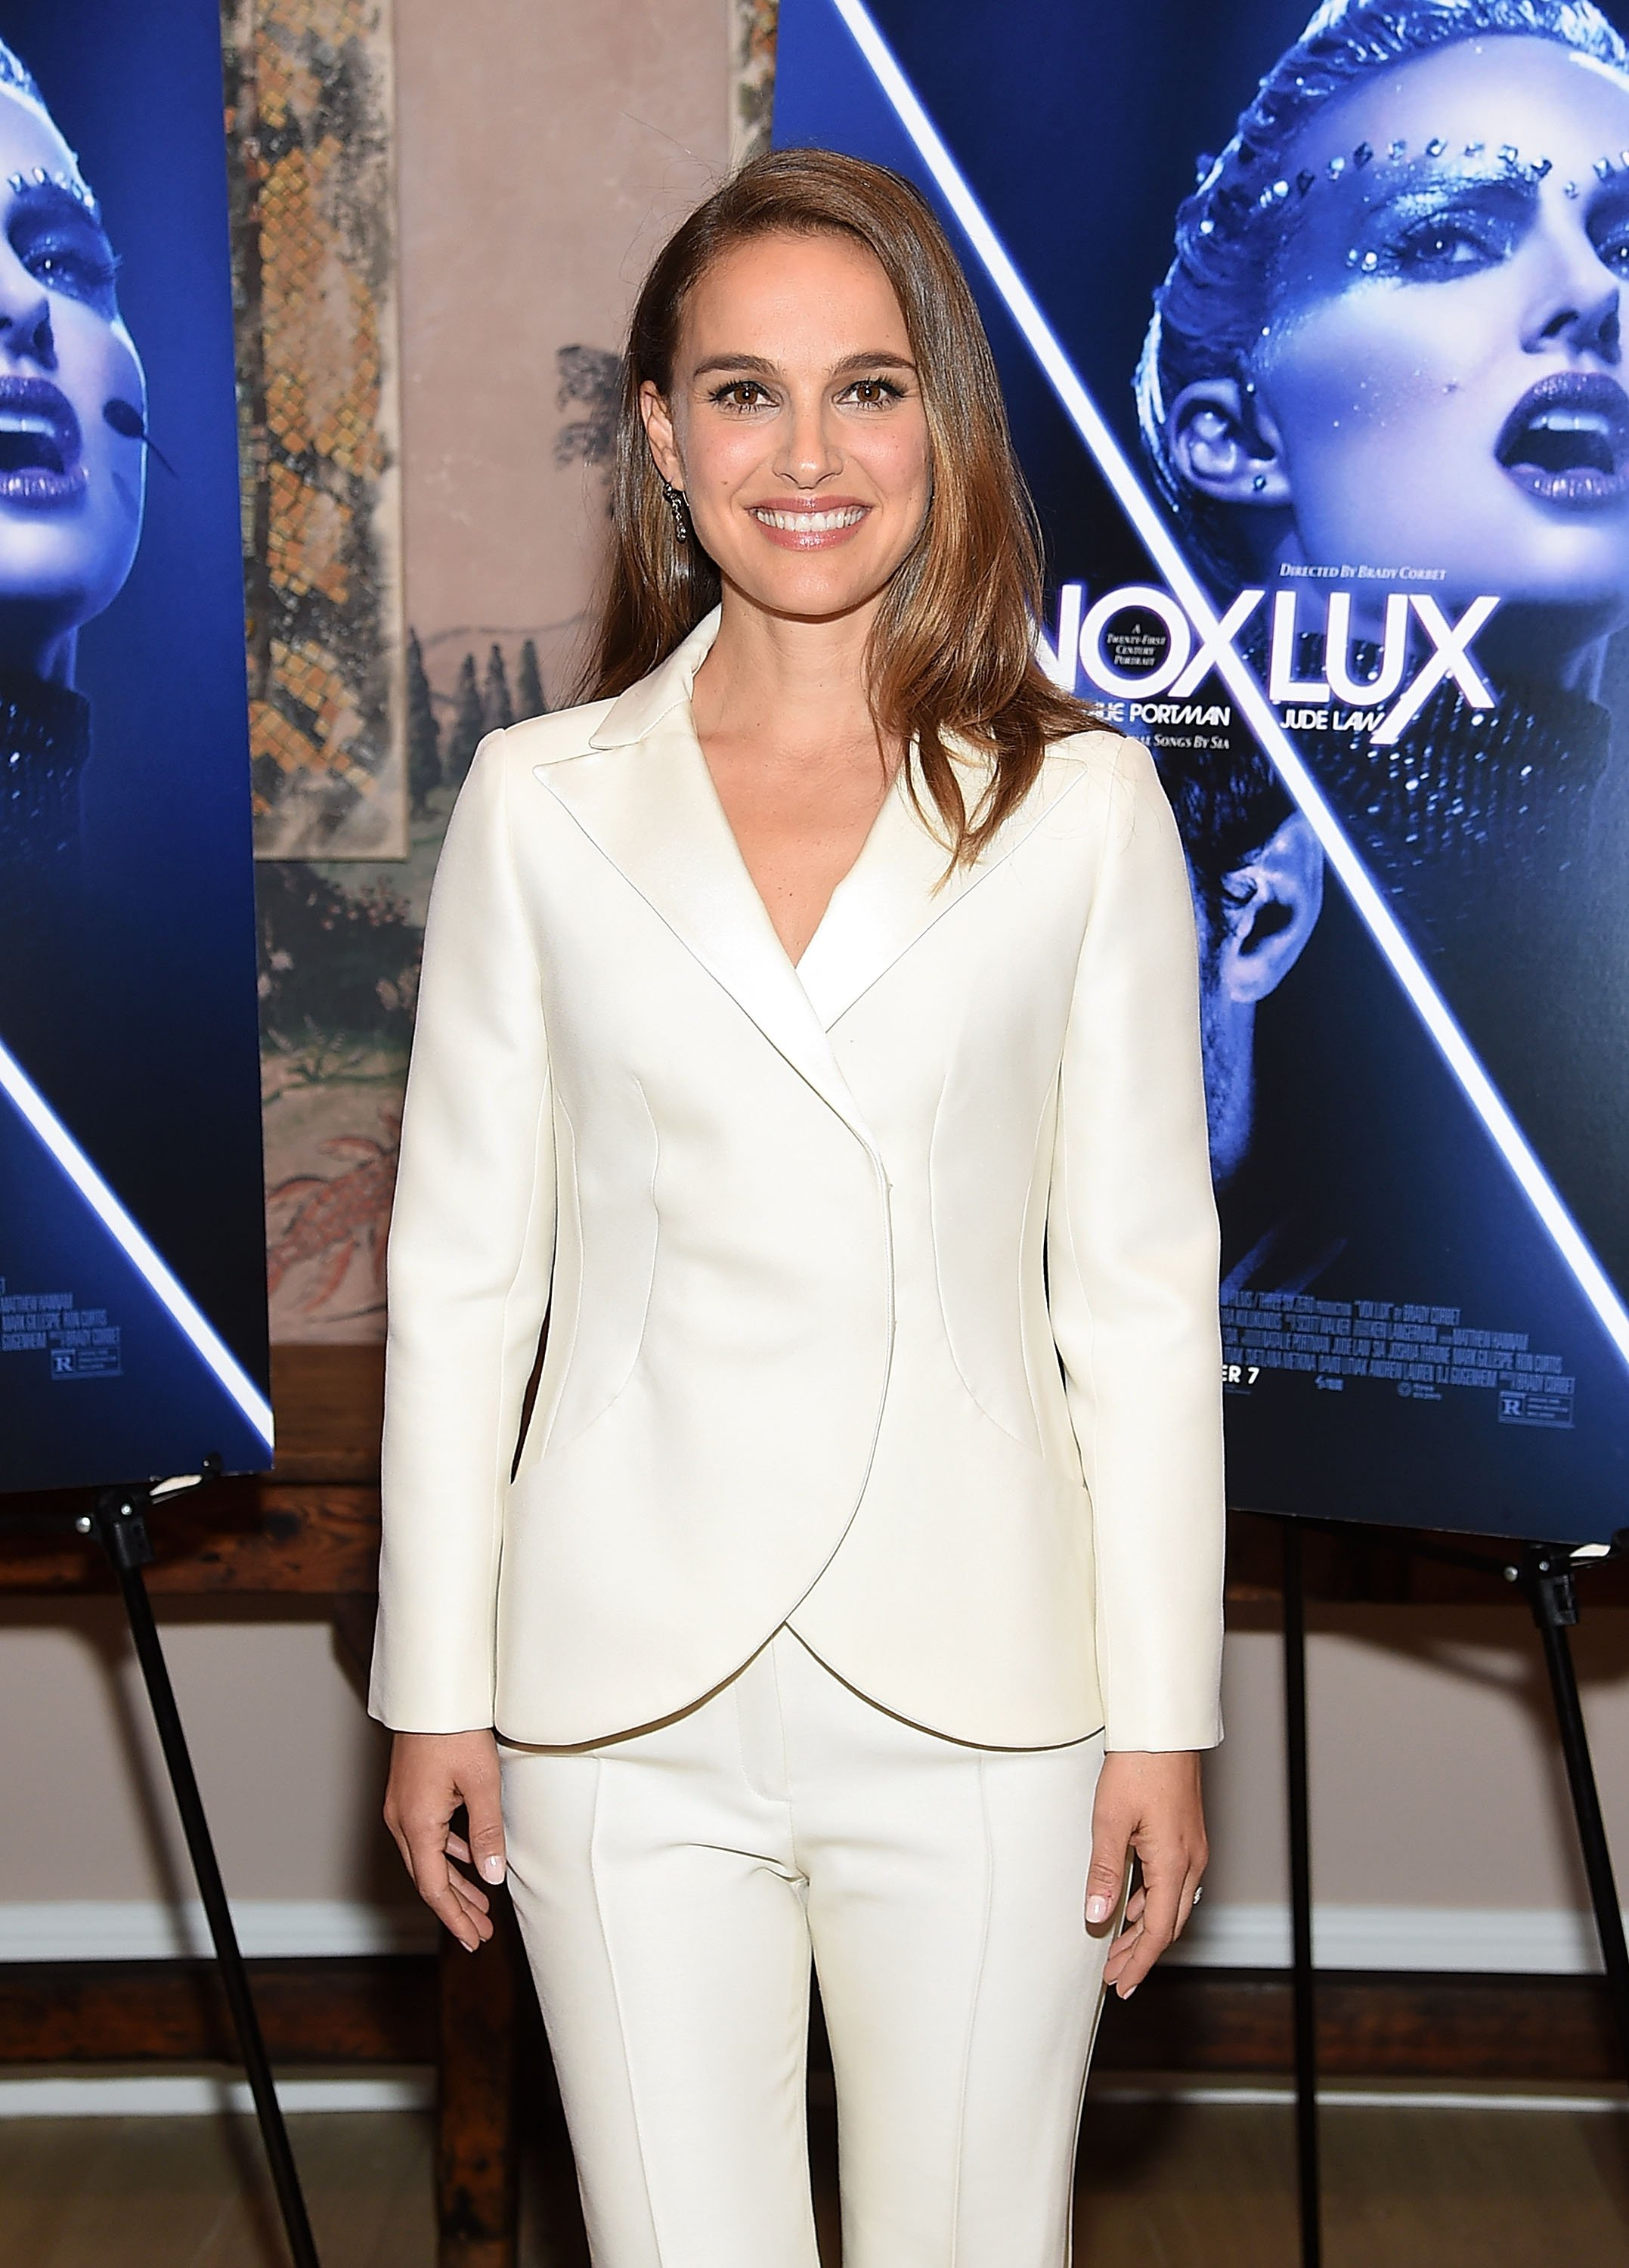 """Natalie Portman at the """"Vox Lux"""" New York screening on December 13, 2018 in New York City. 